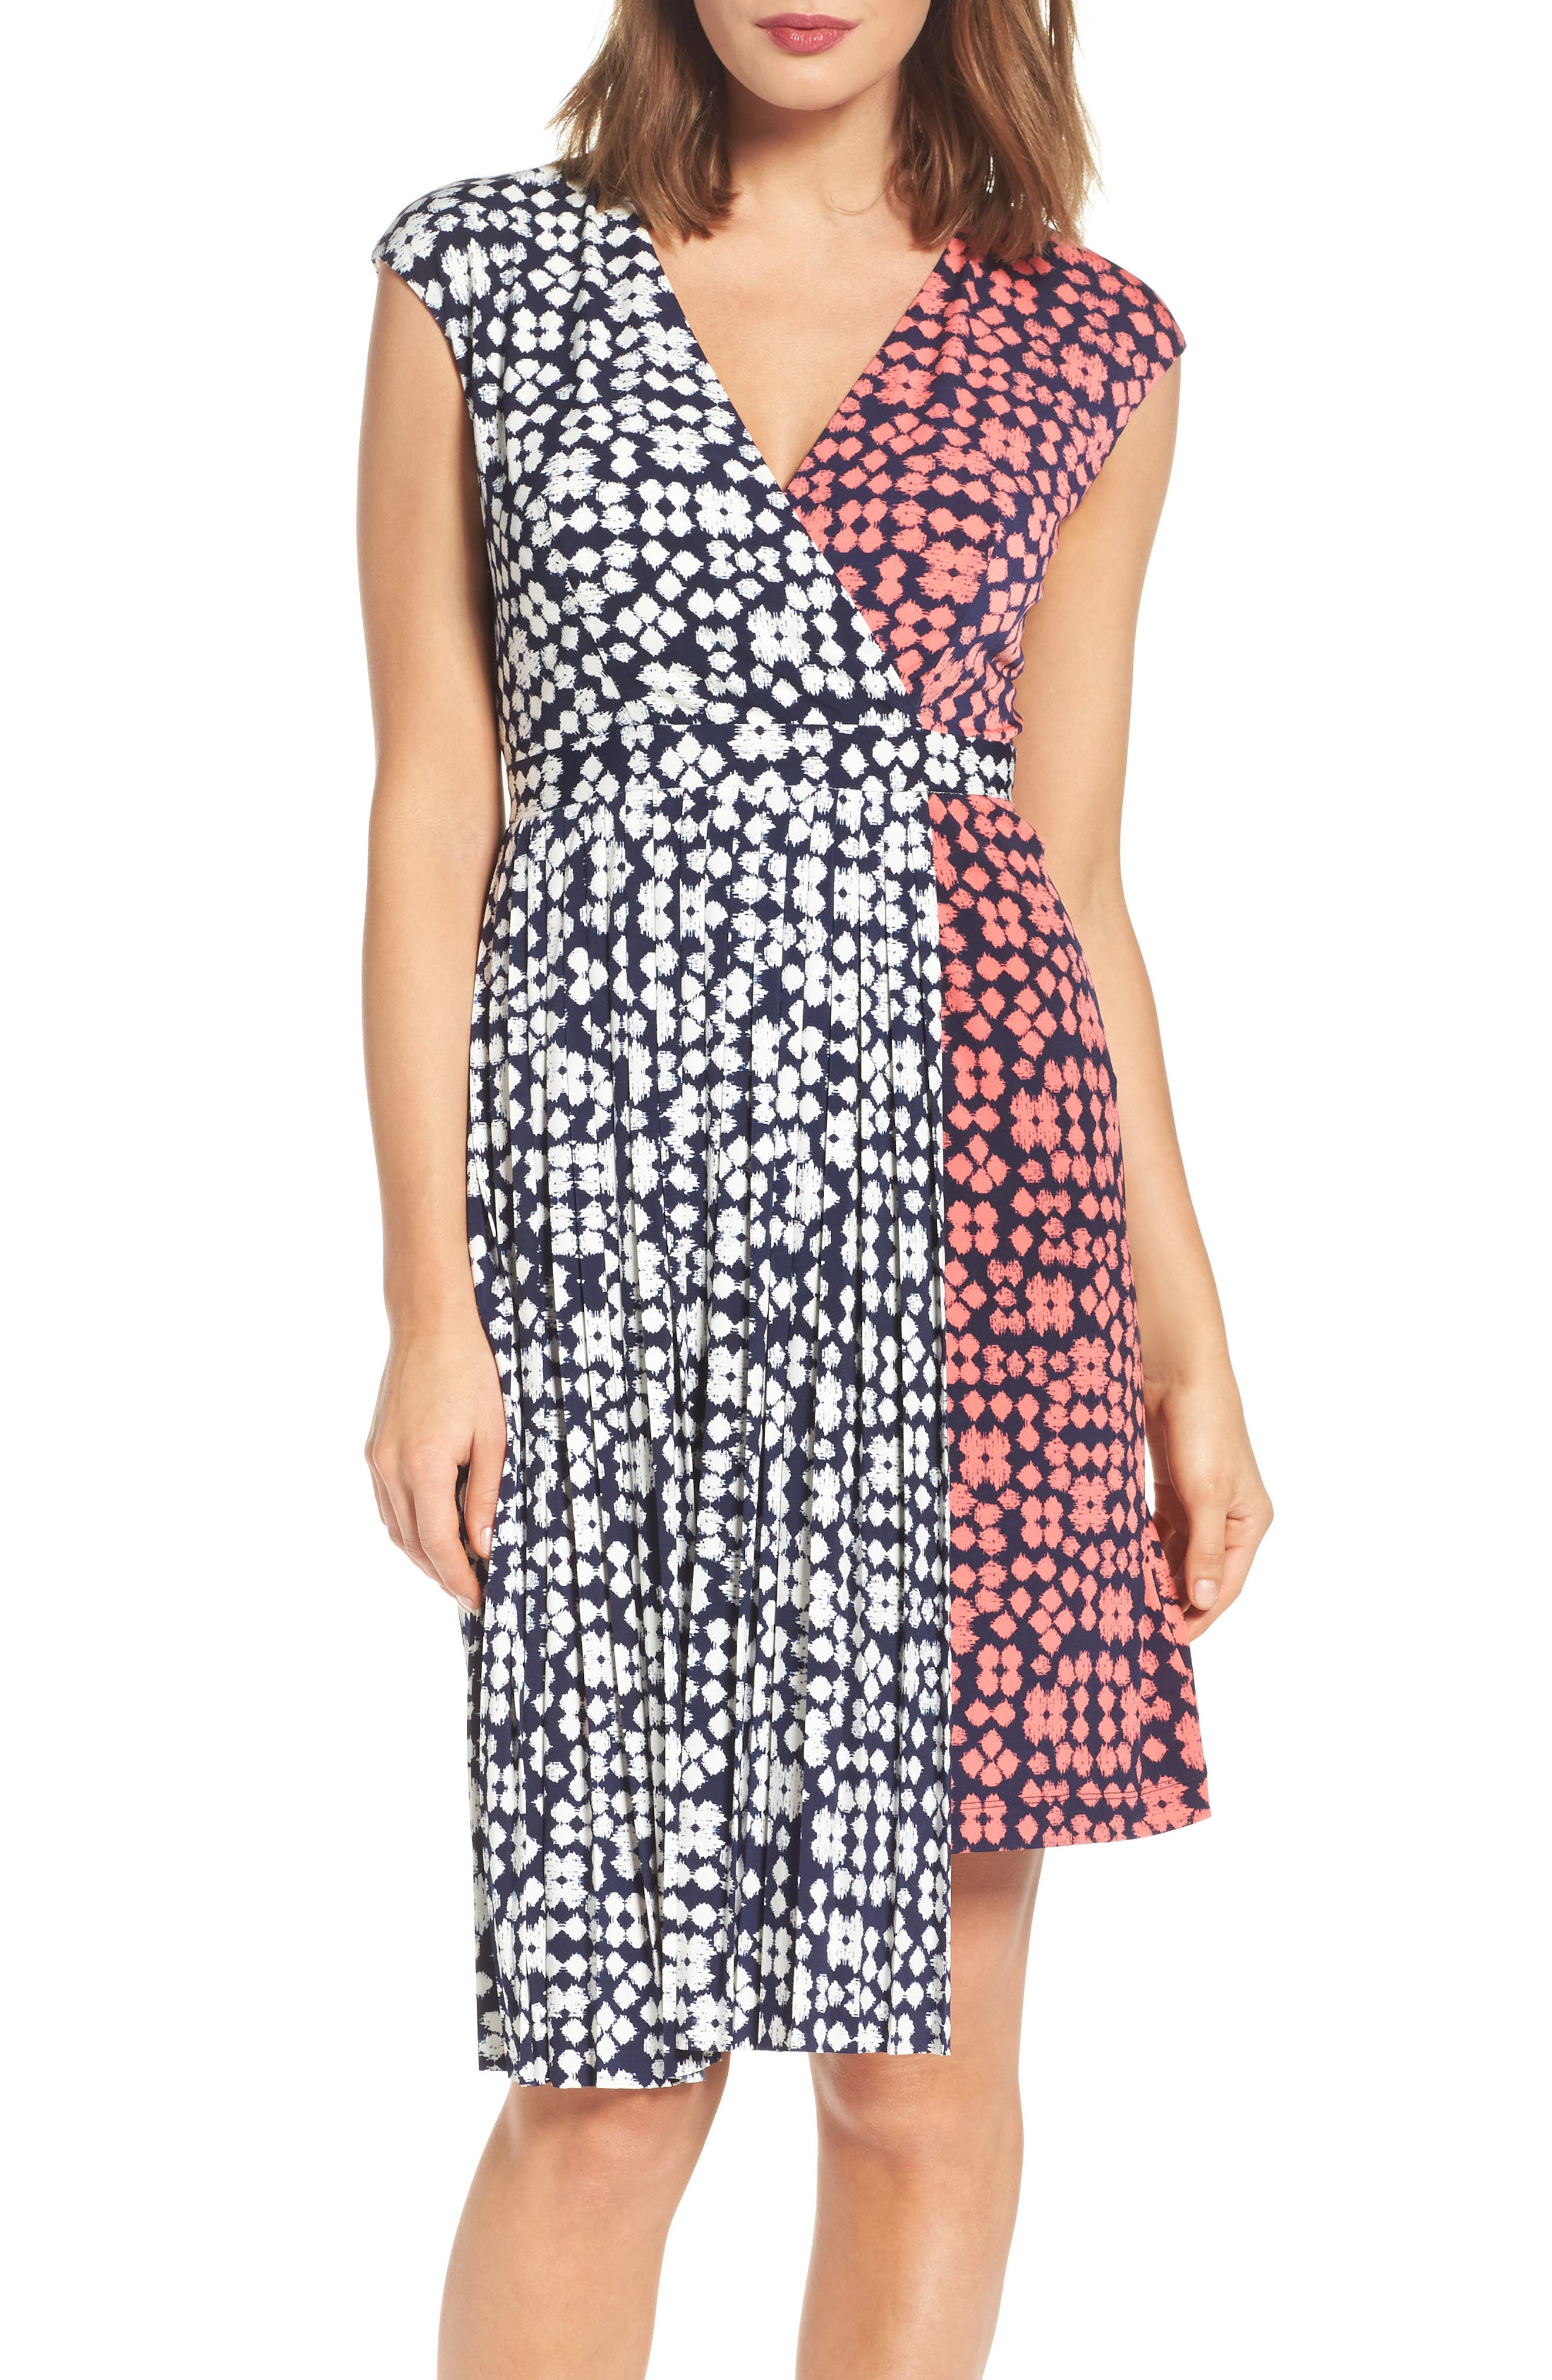 Alternate Image 1 Selected - Maggy London Print Faux Wrap Dress